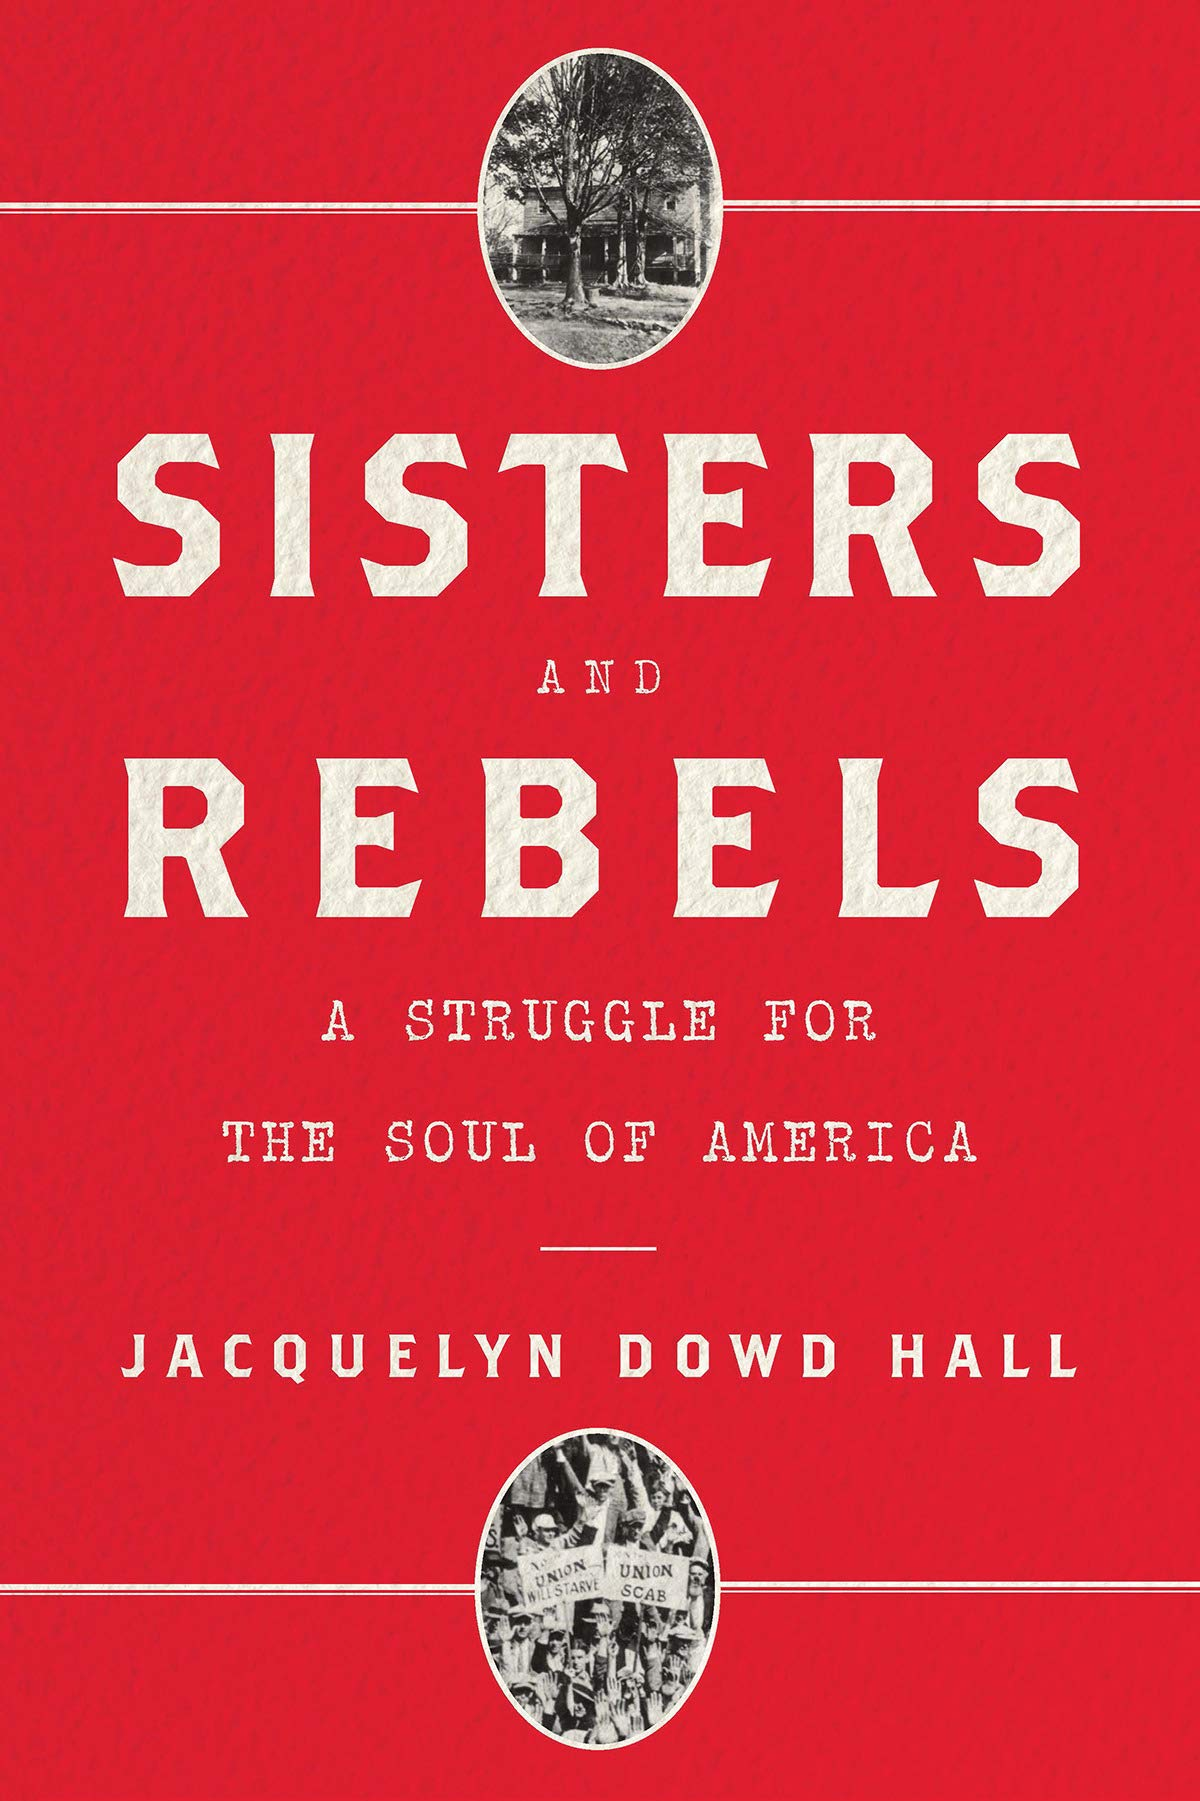 Image result for rebels and sisters